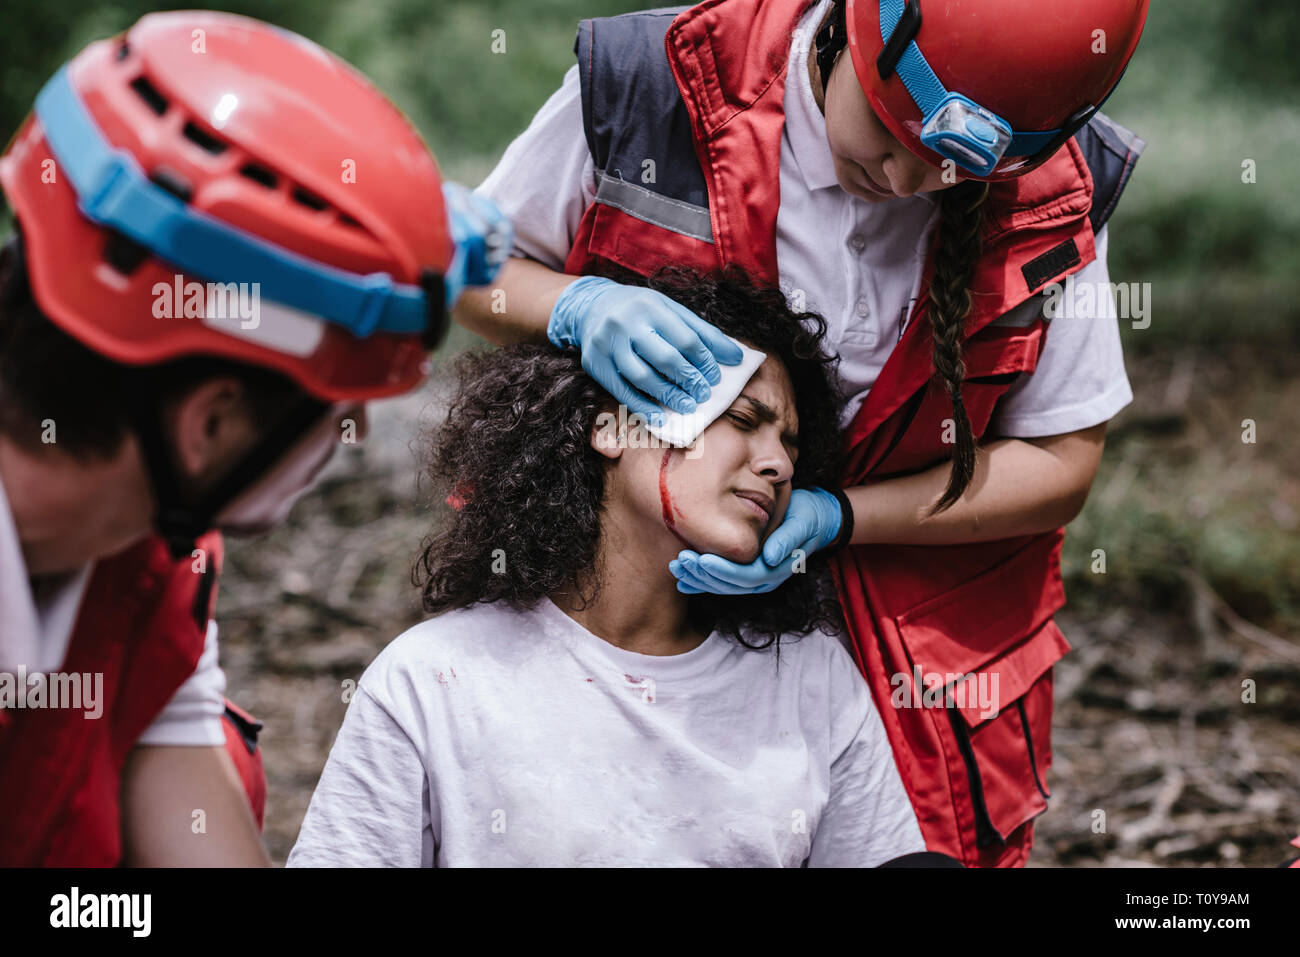 Rescue team treating injuries in the field. - Stock Image